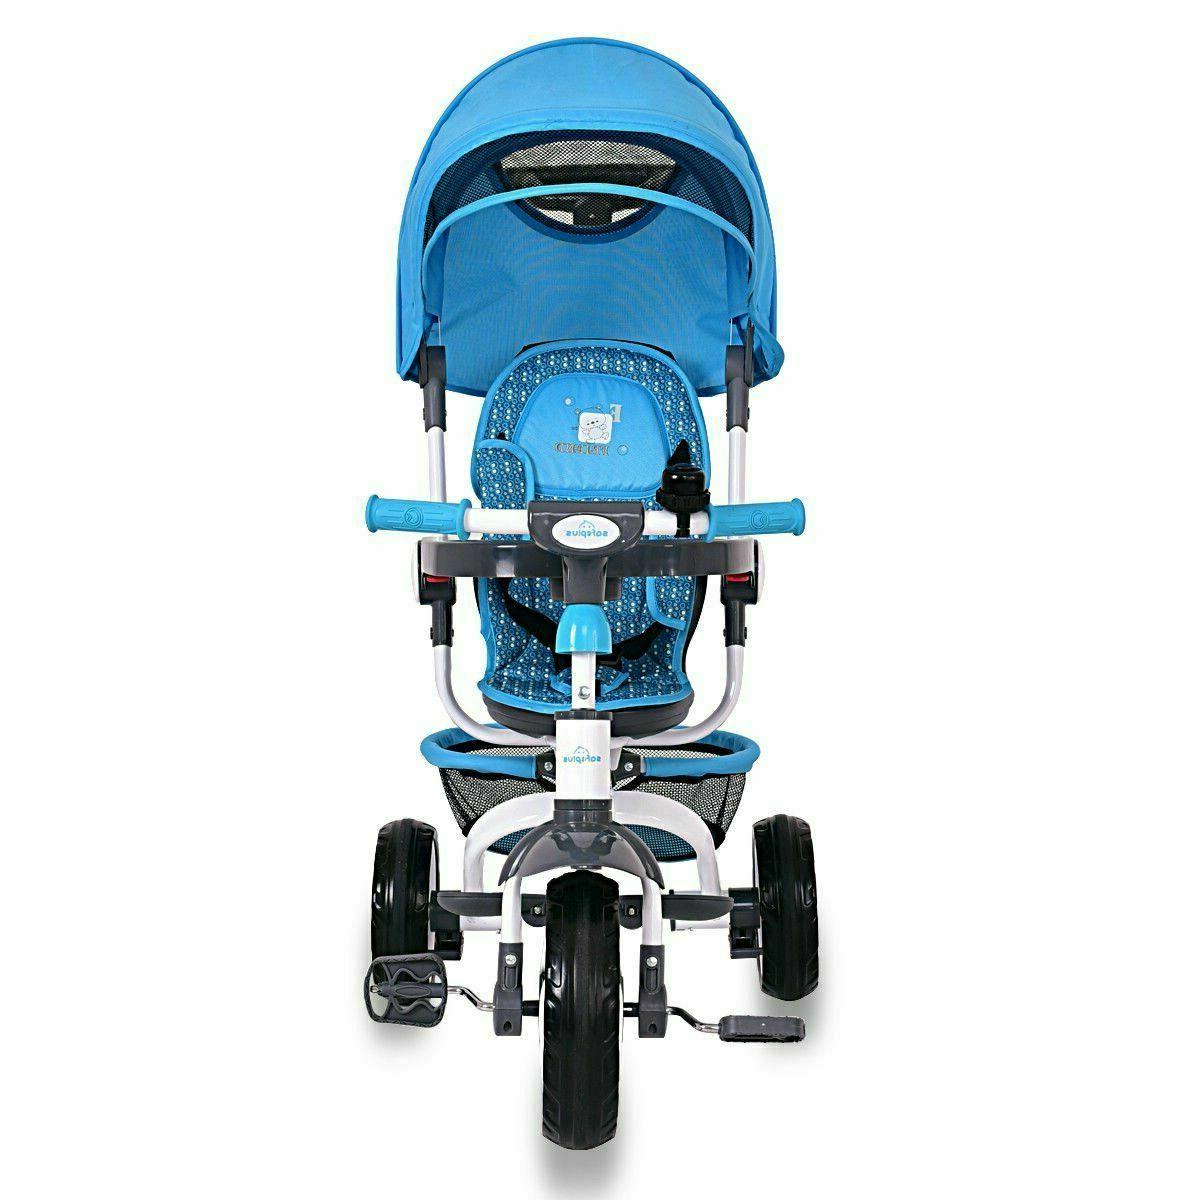 4-in-1 Detachable Tricycle with Canopy